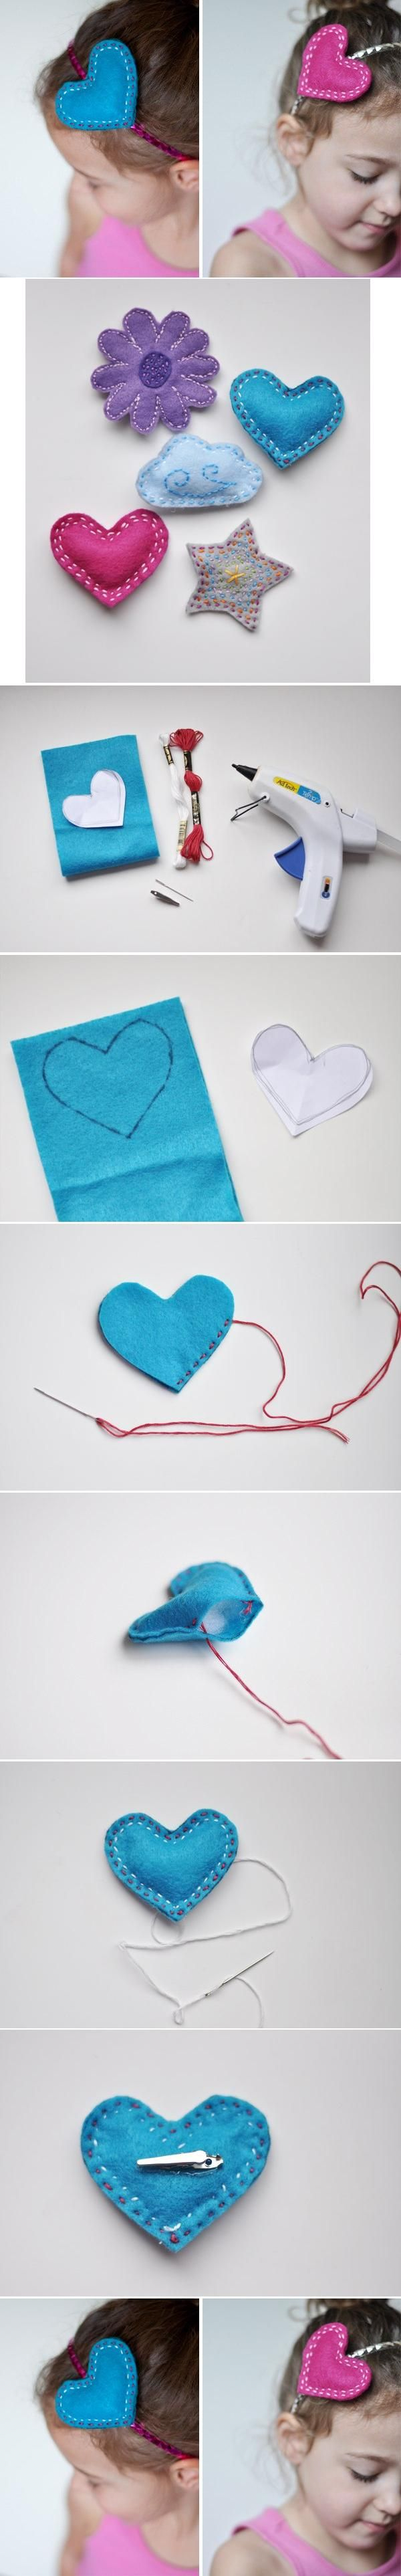 DIY Lovely Felt Ornament